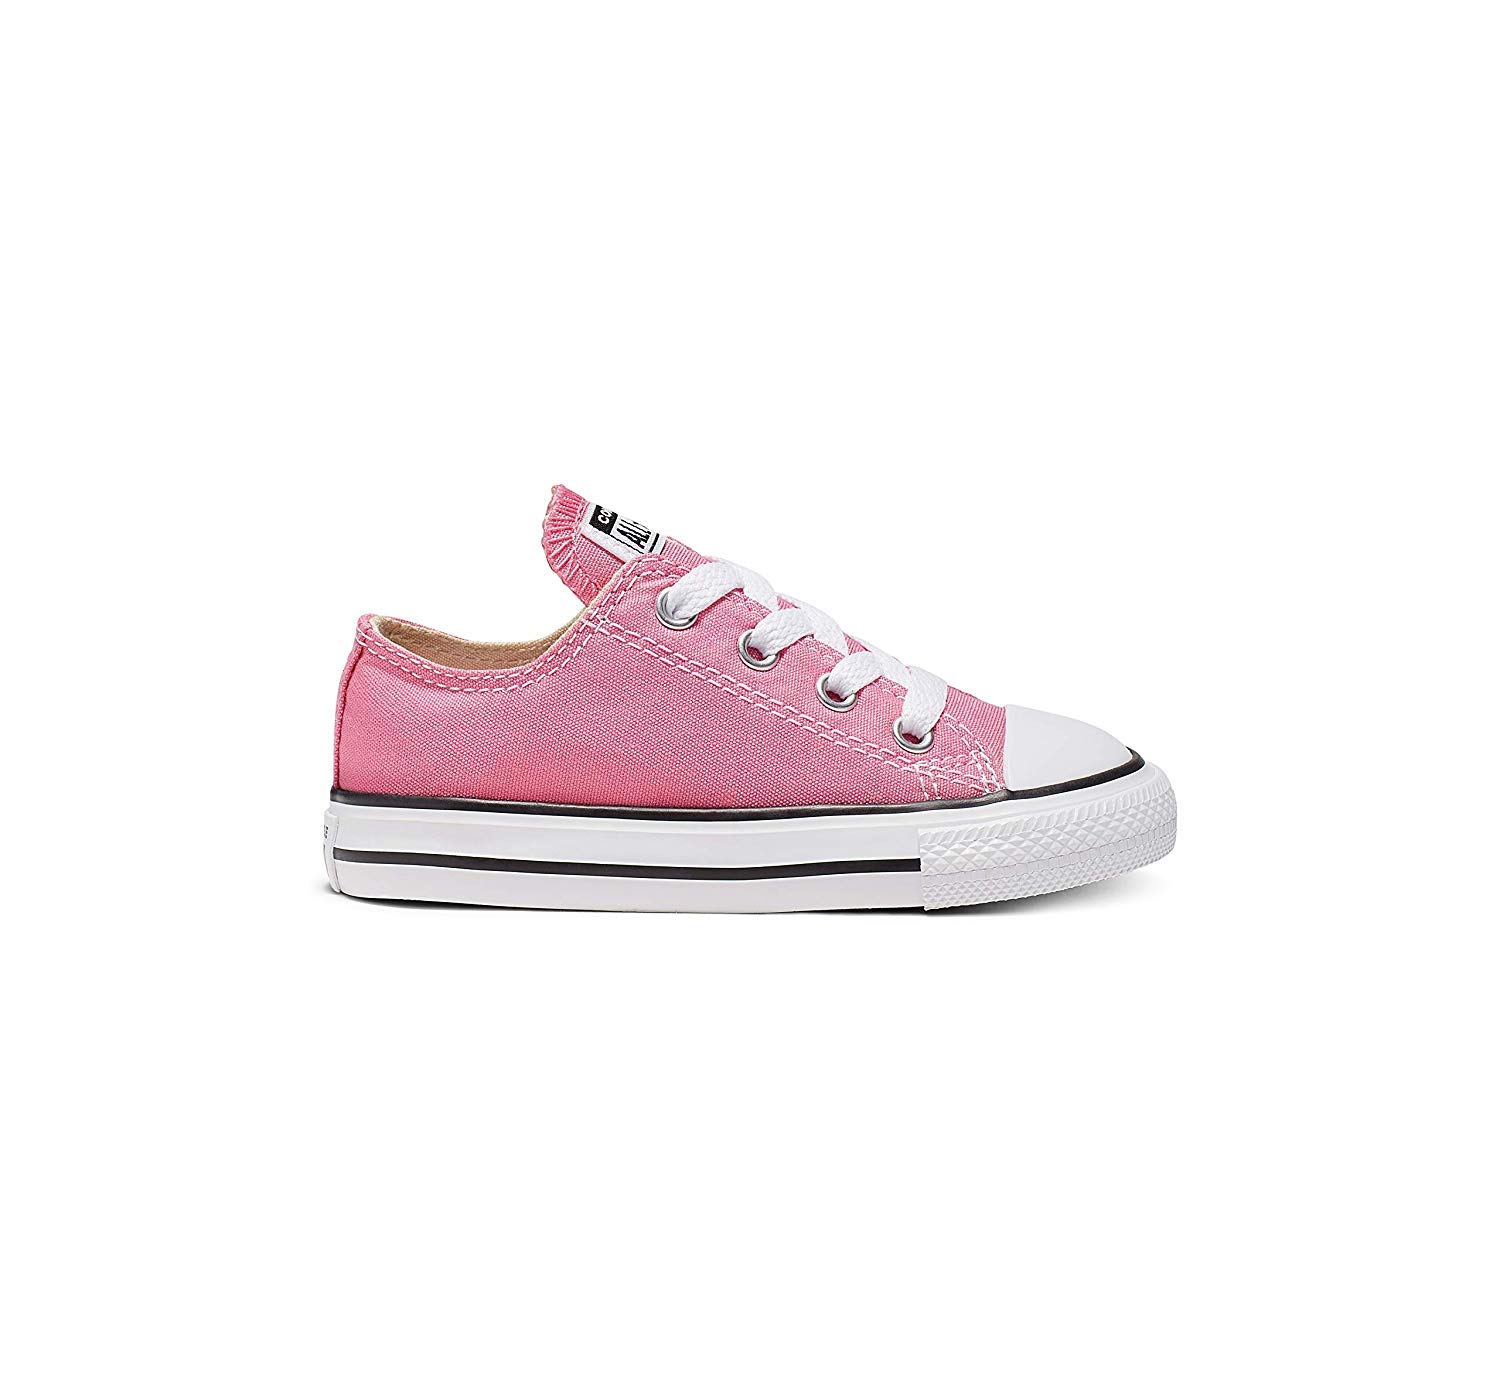 Converse Unisex-Child Chuck Taylor All Star  Low Top Sneaker, pink, 5 M US Toddler by Converse